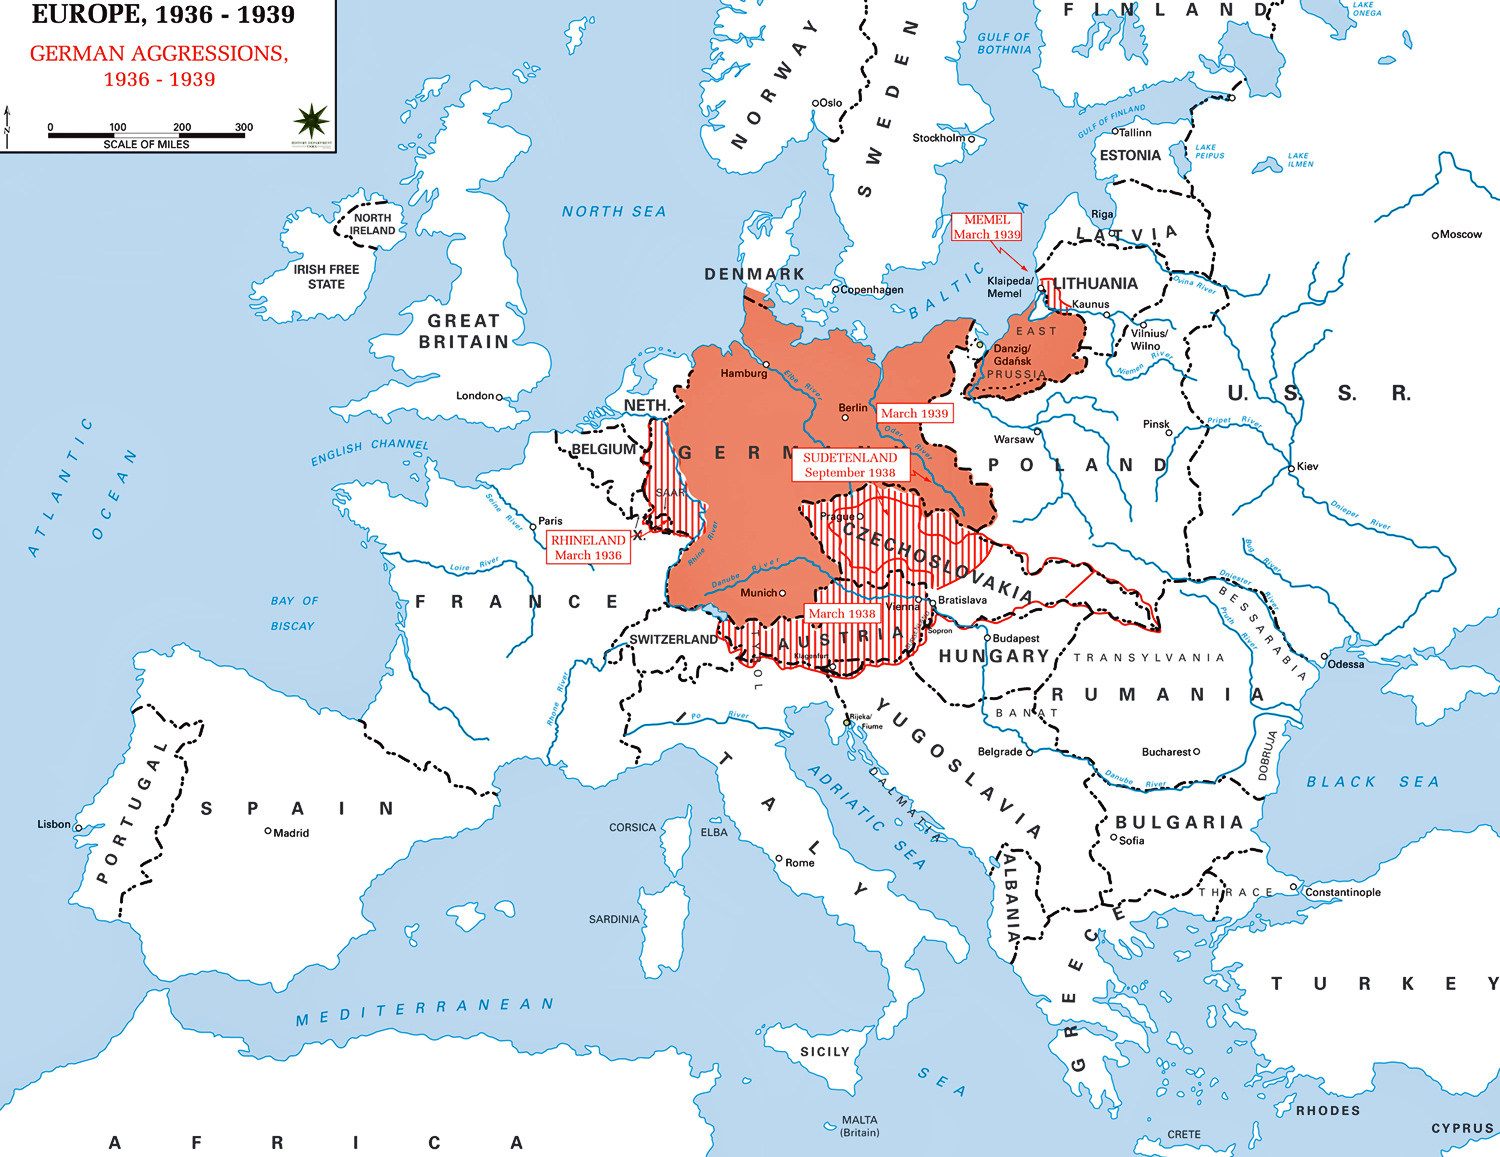 Map Of Europe 1936 1939